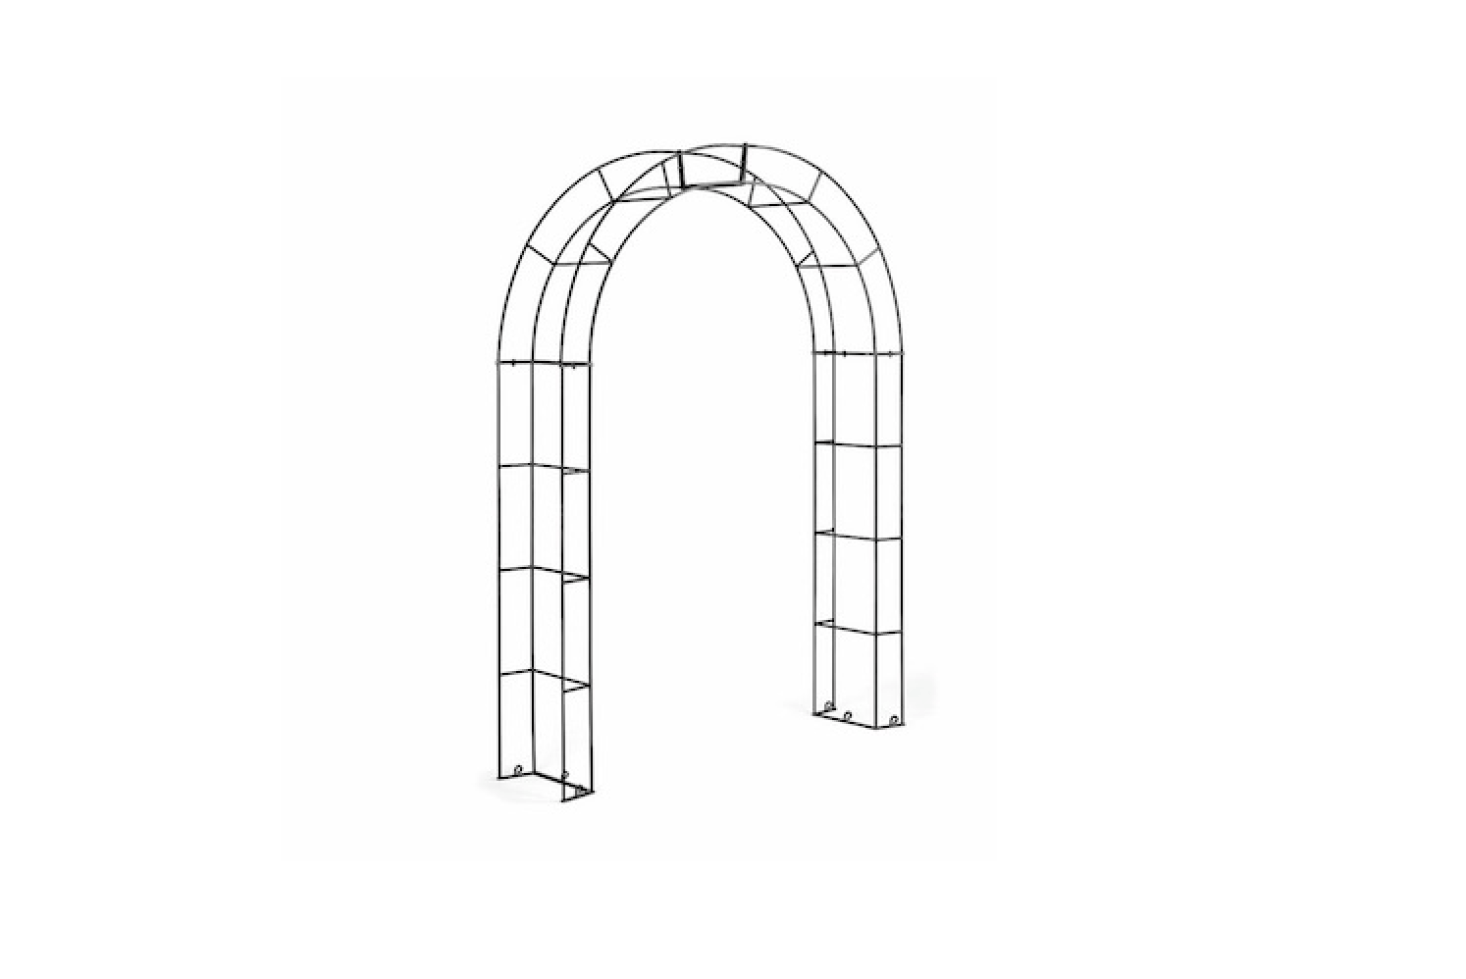 An archedRose Bow Arbor made of steel is 7.7 feet tall and is €325 at Manufactum.